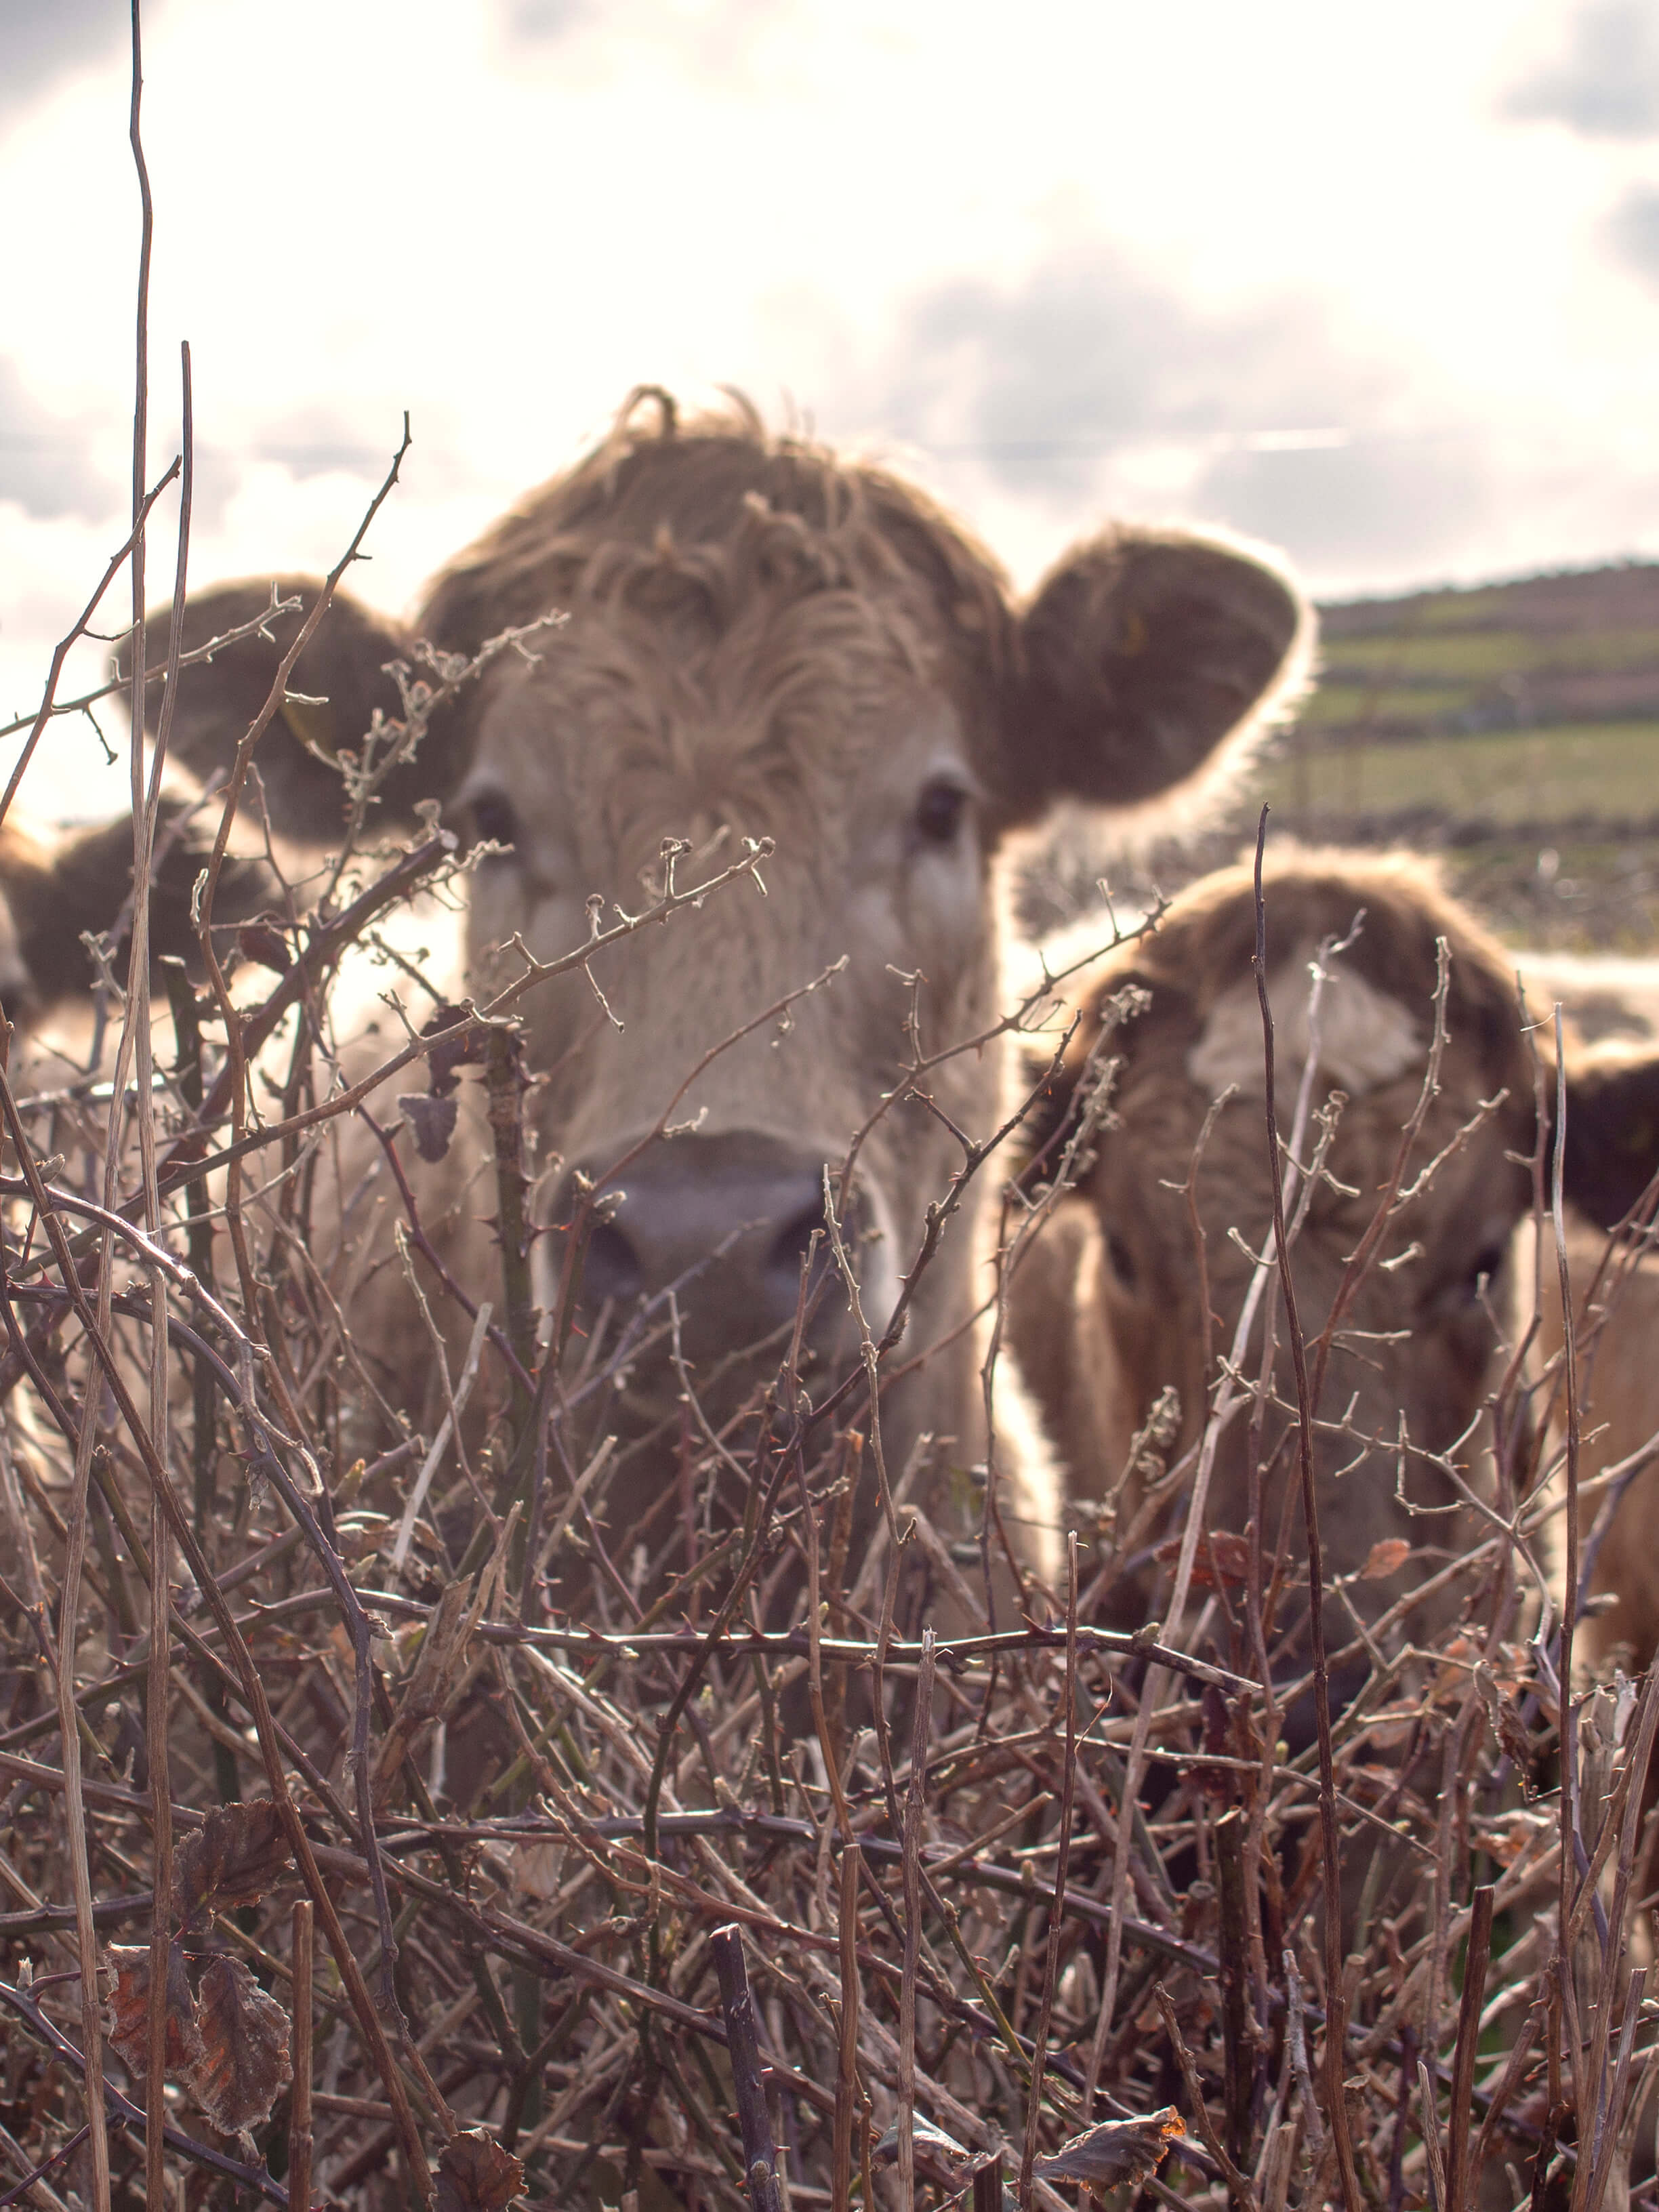 a group of four cows standing in a field looking at the camera. There is hedging in front of them.